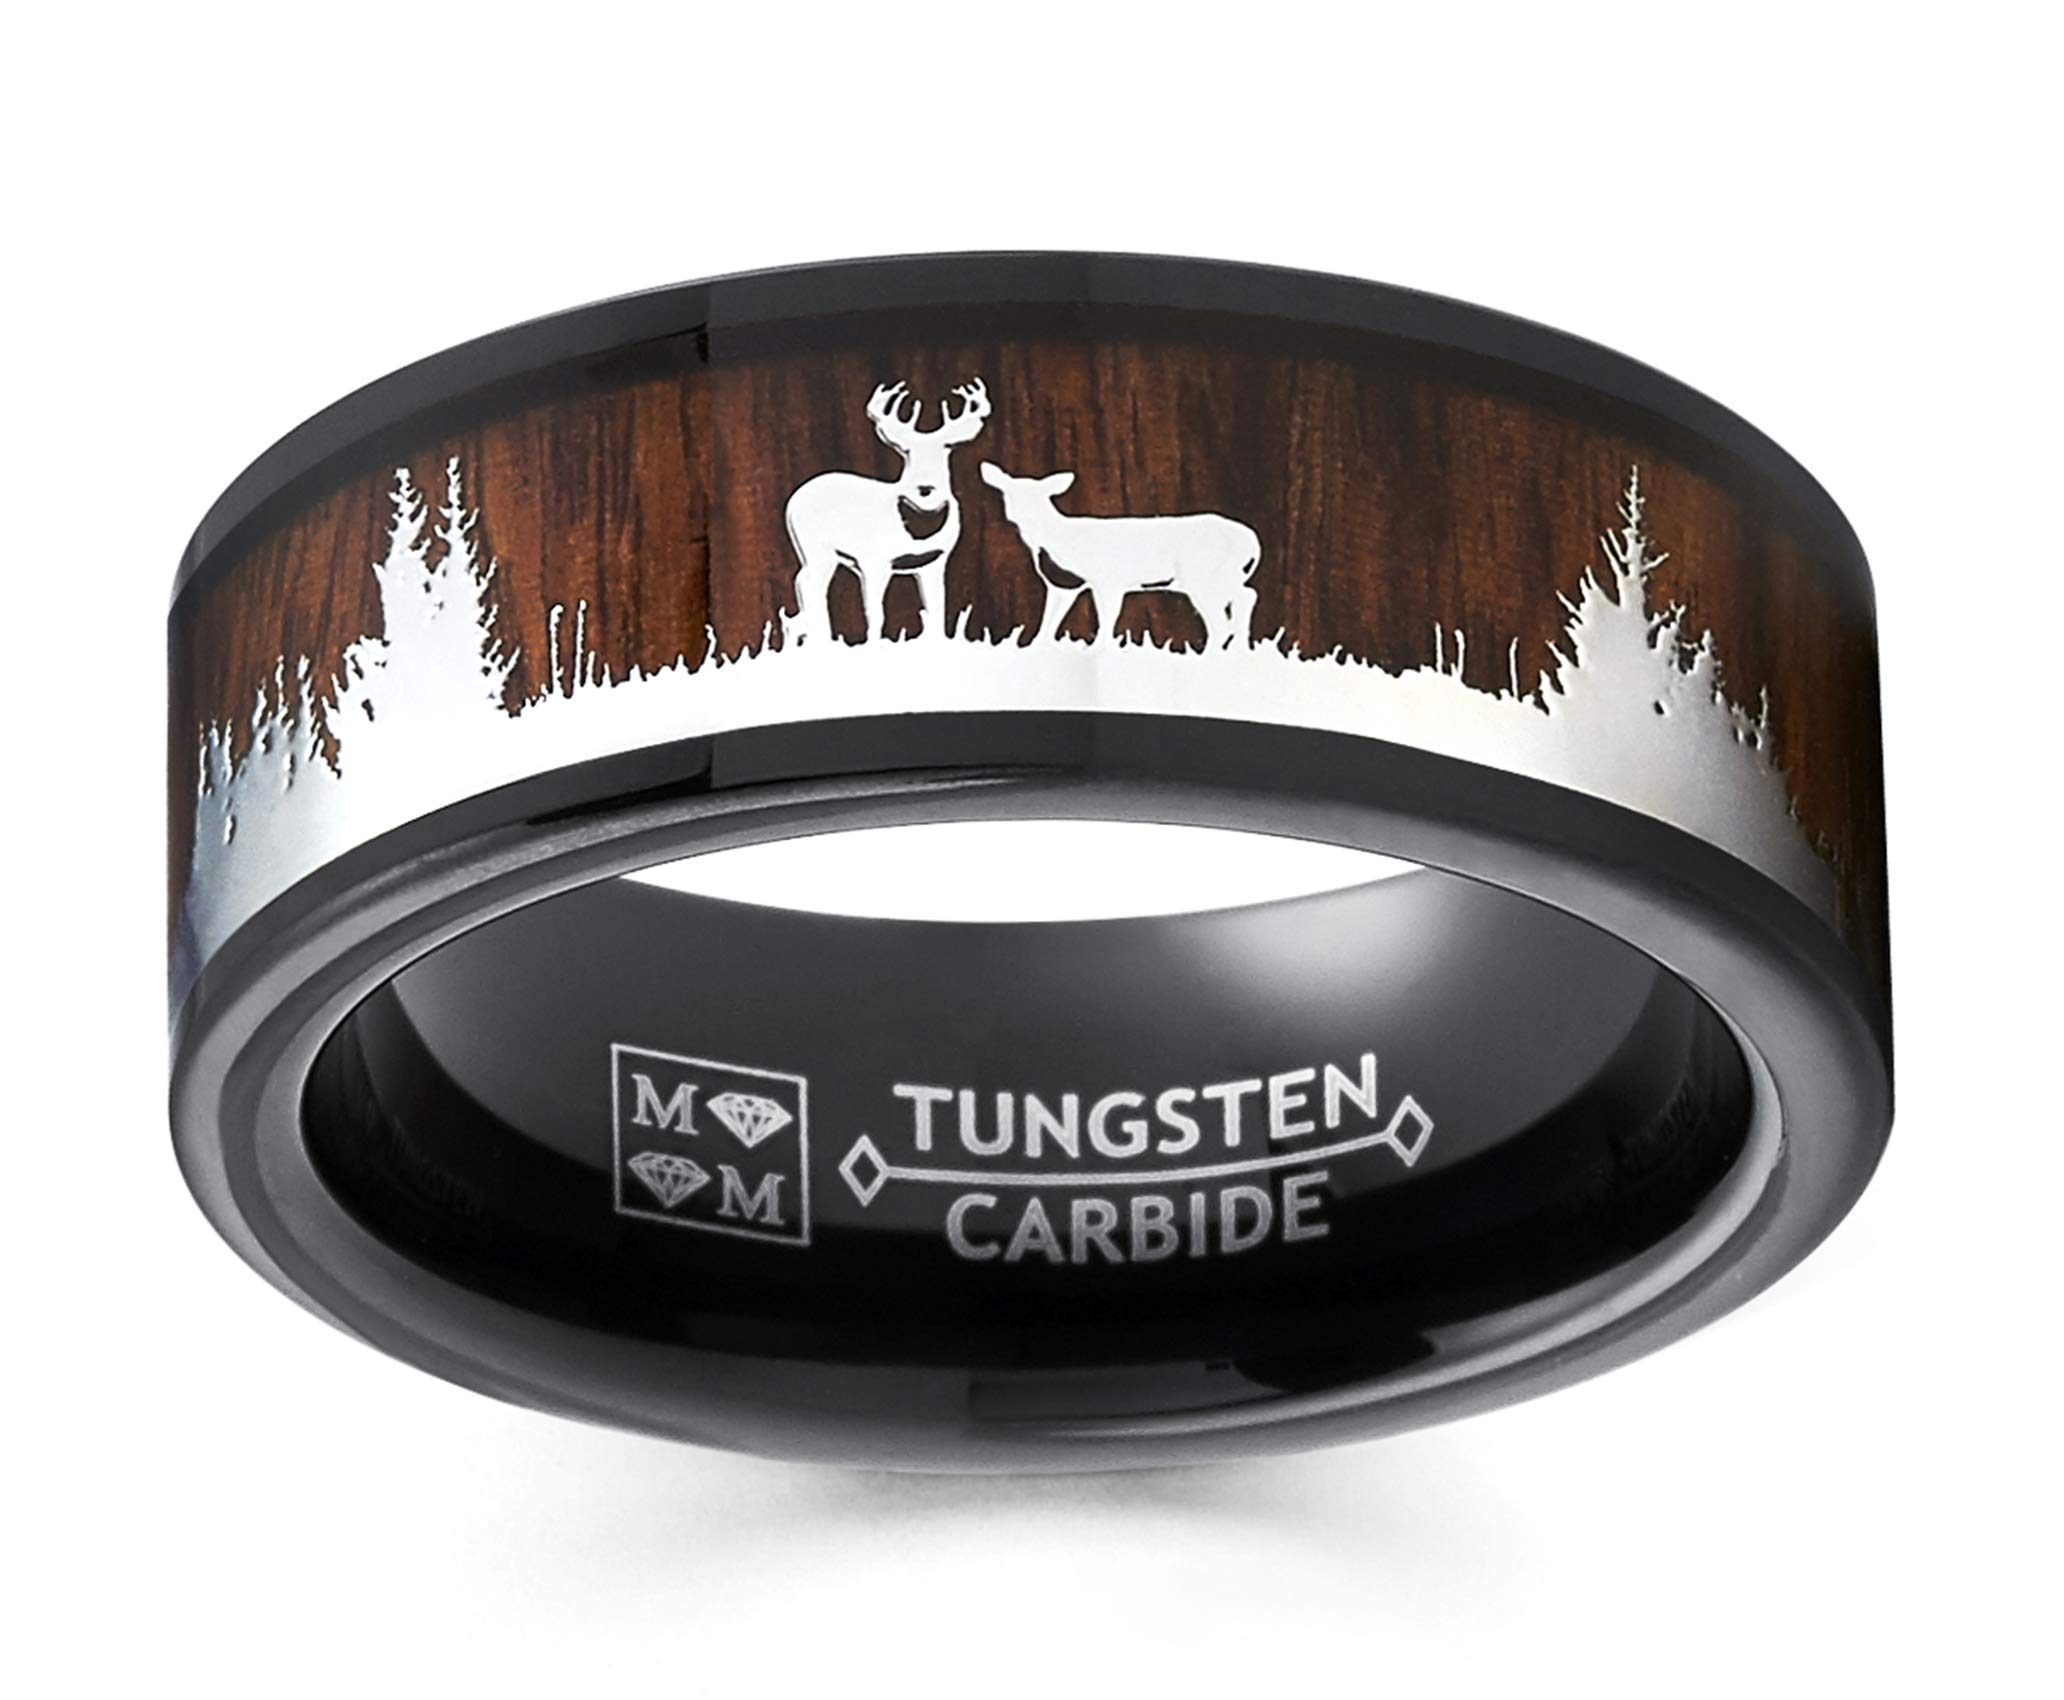 Metal Masters Co. Men's Black Tungsten Hunting Ring Wedding Band Wood Inlay Deer Stag Silhouette 10